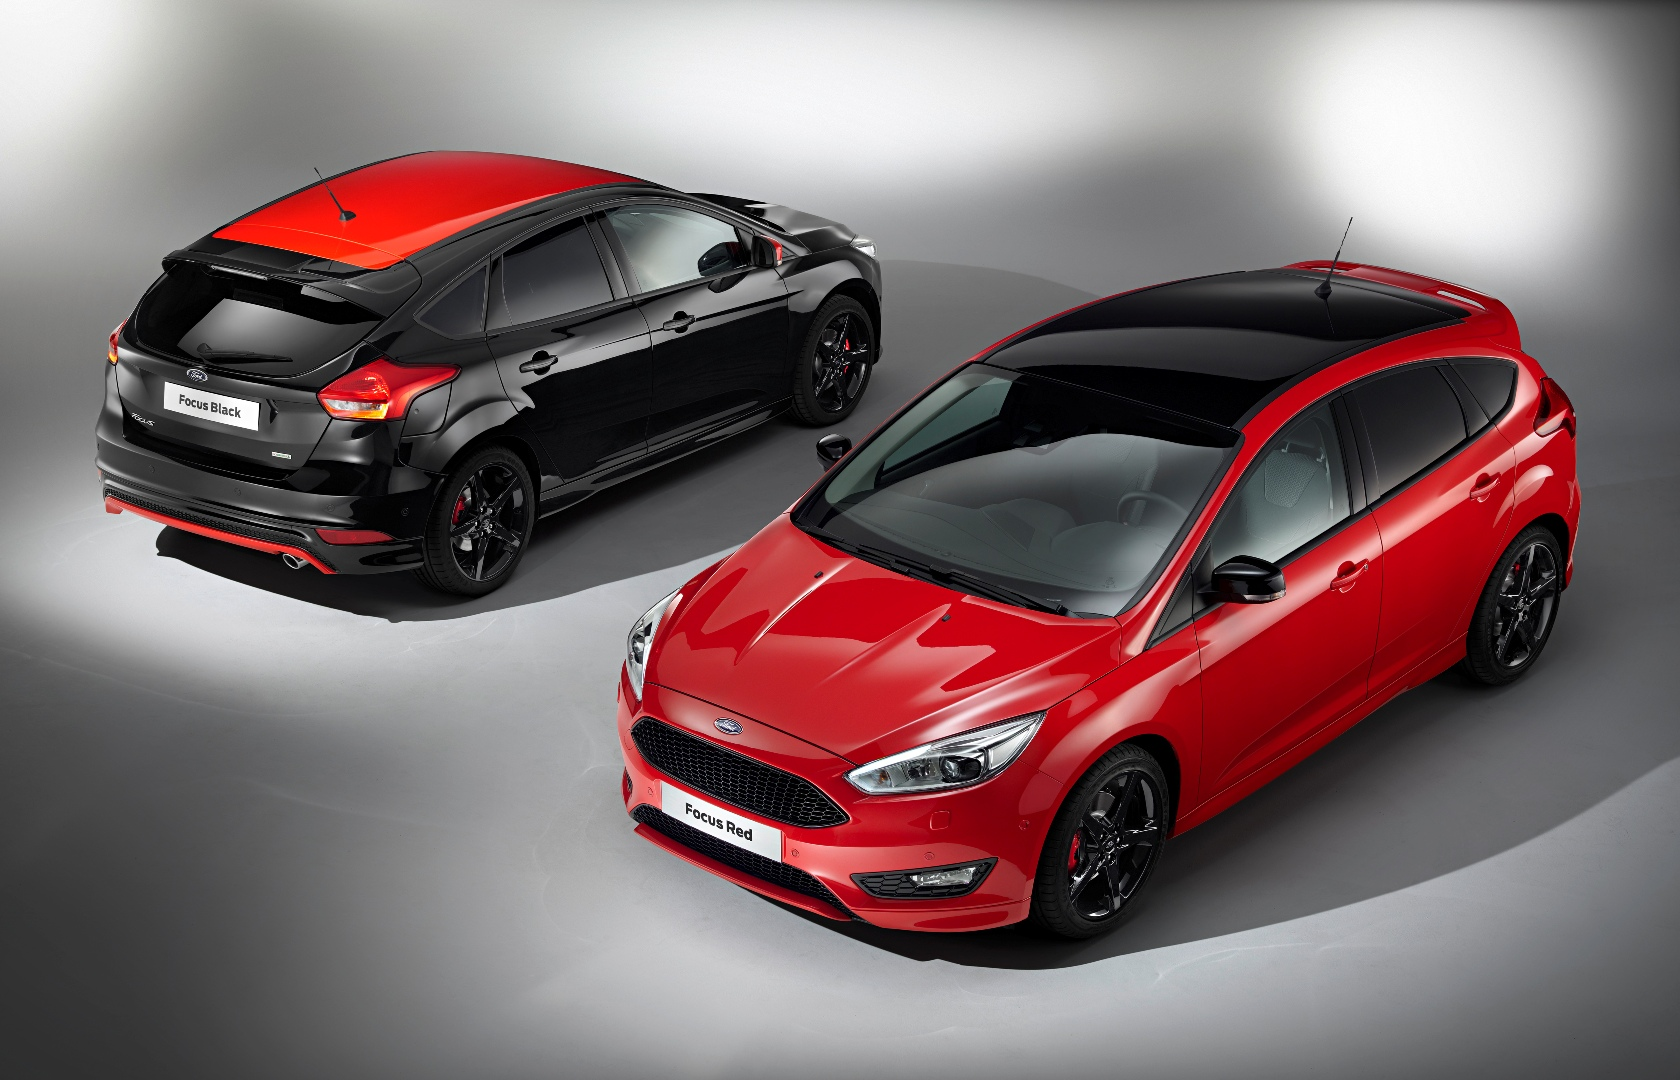 Ford Focus Zetec S Red and Black editions